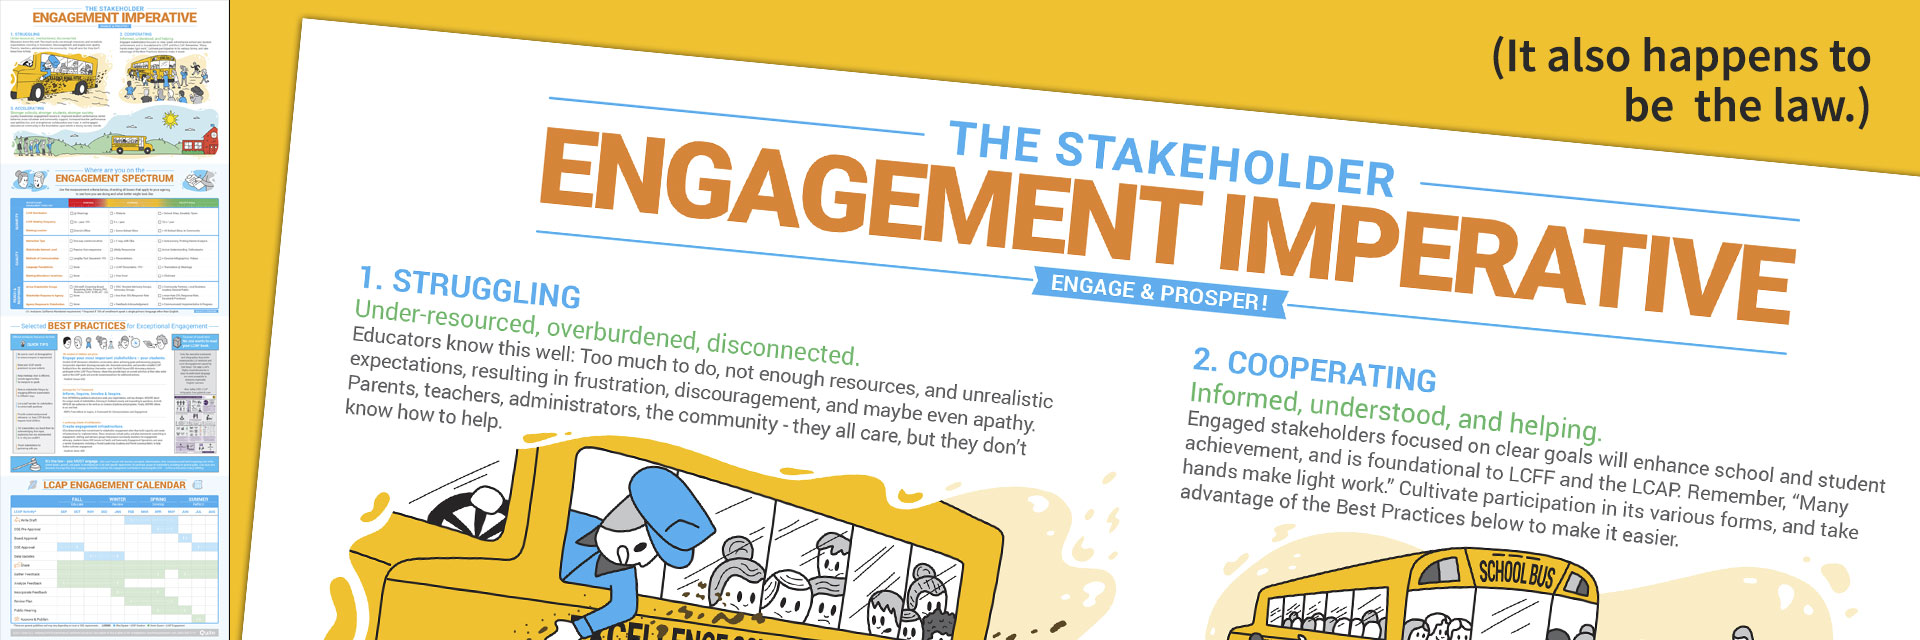 LCAP Stakeholder Engagement Imperative Infographic